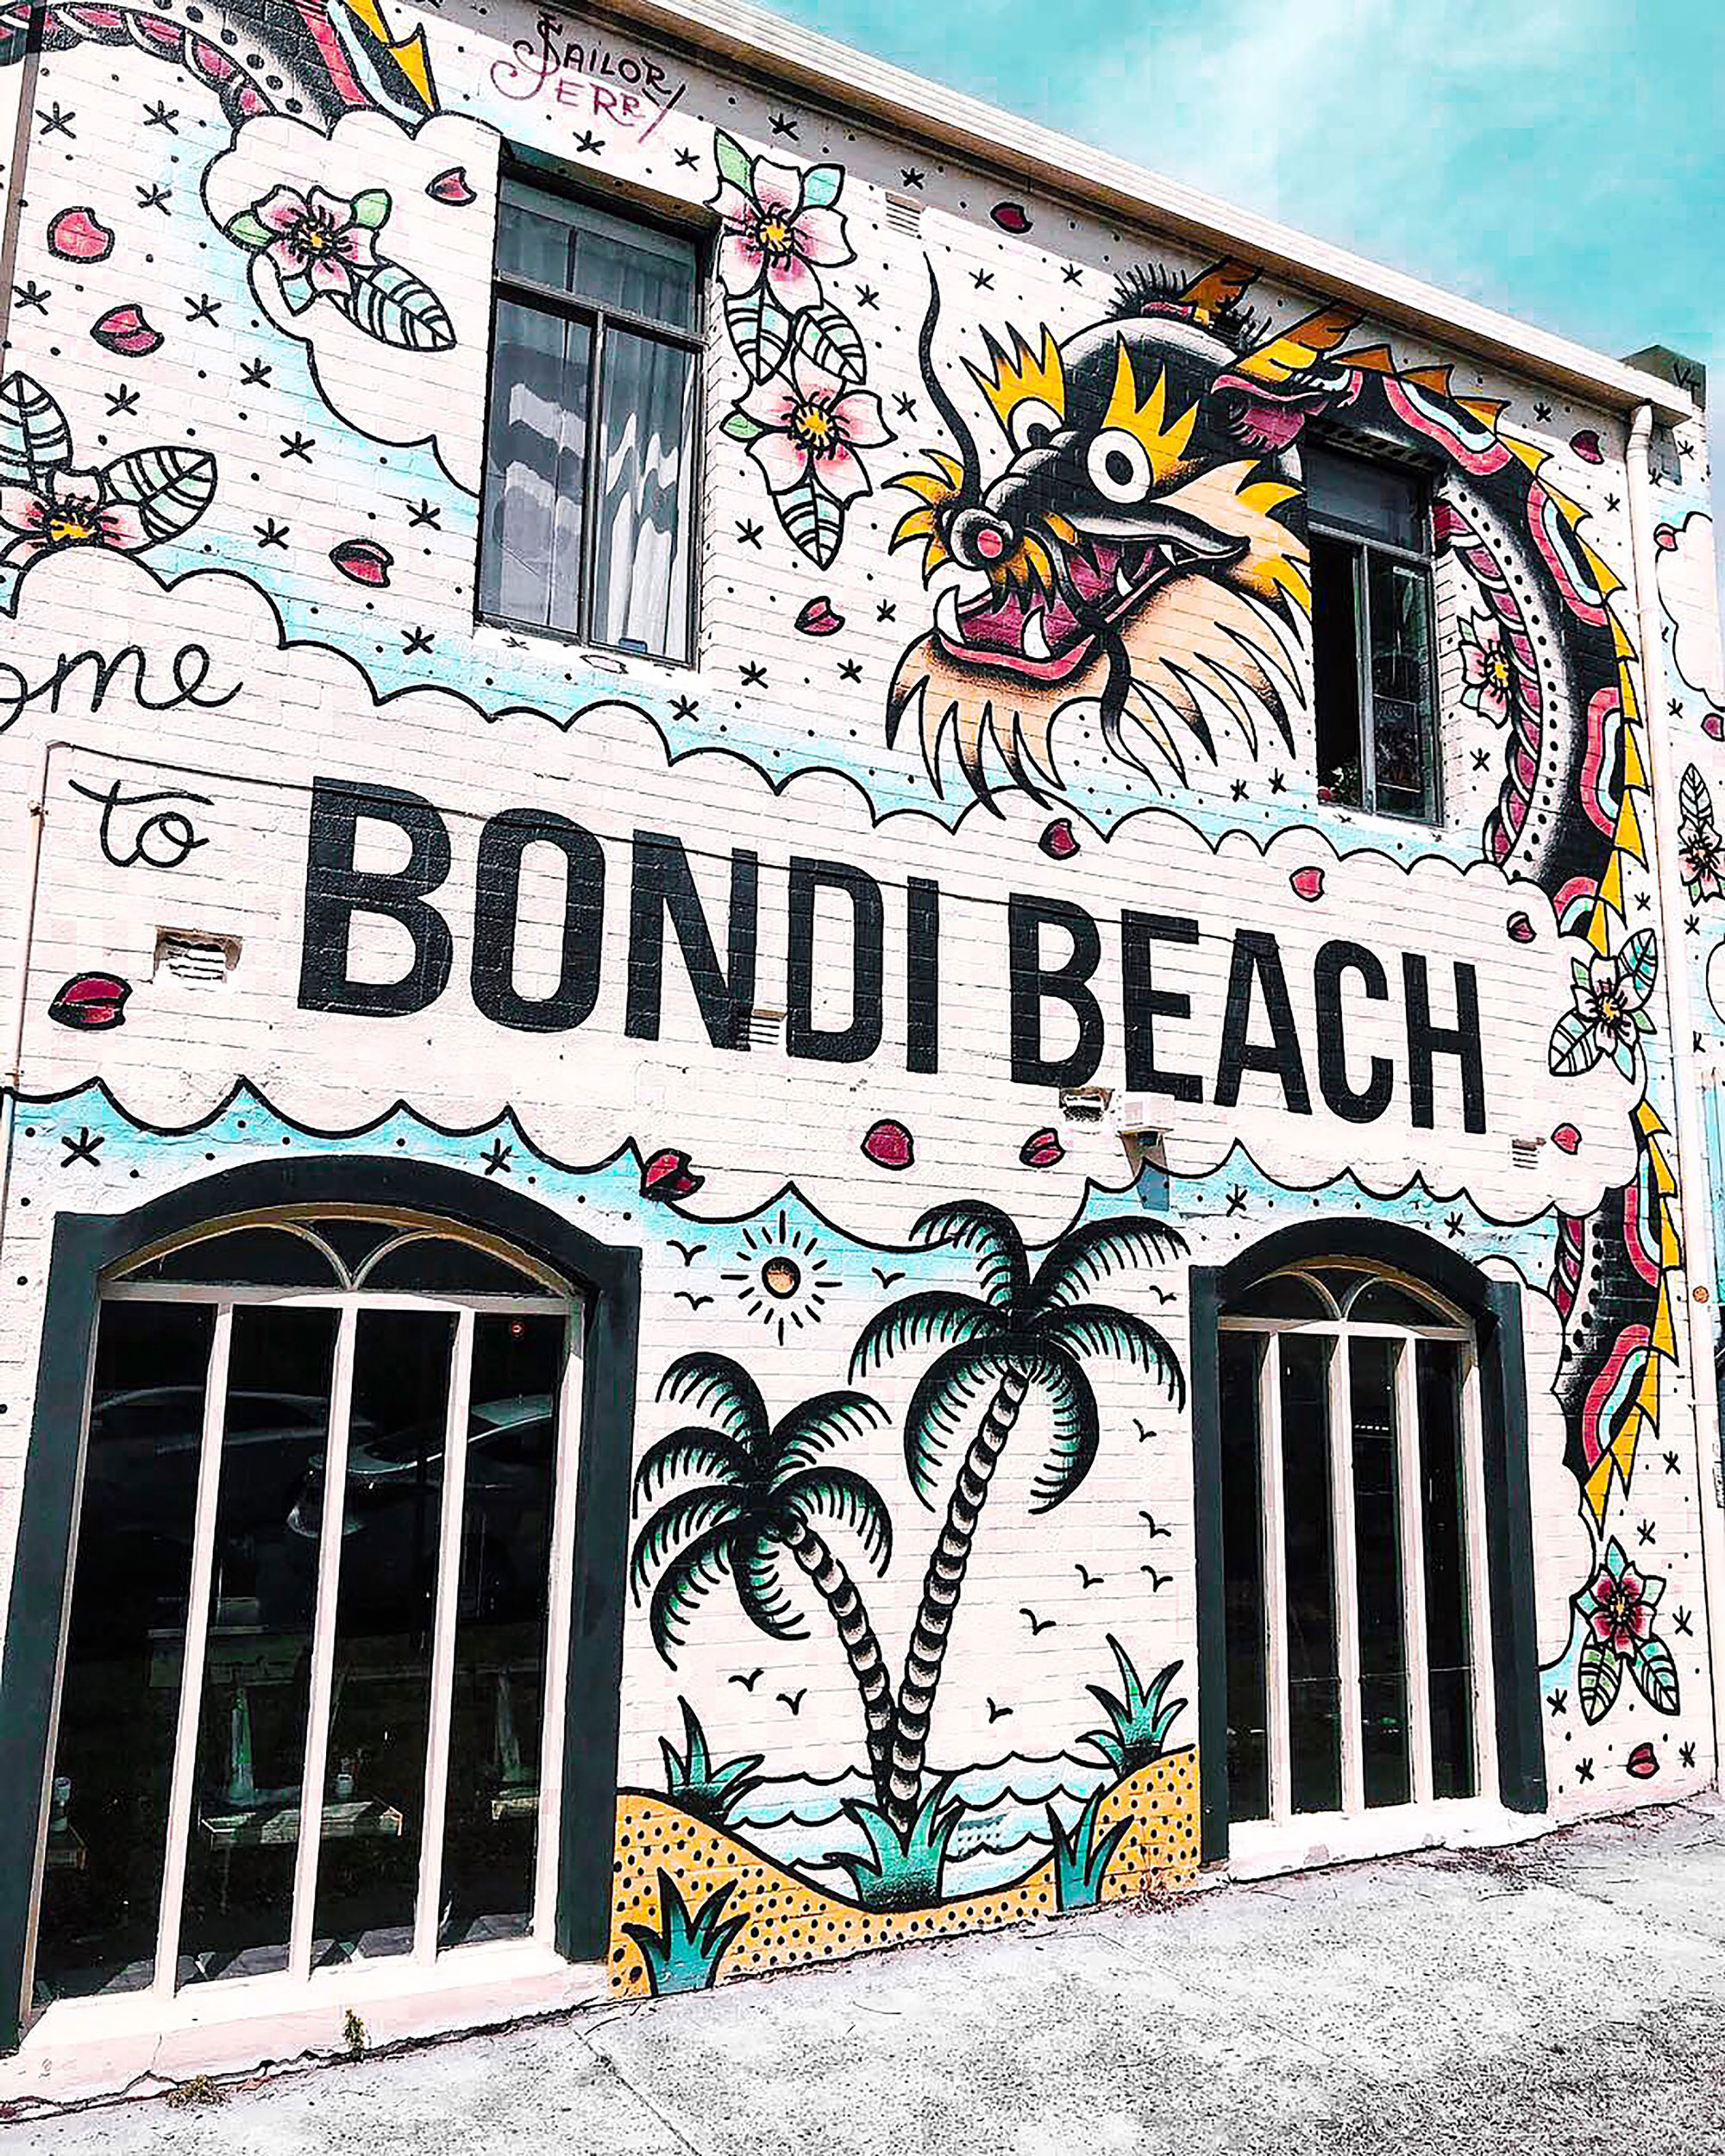 Bondi Beach graffiti.